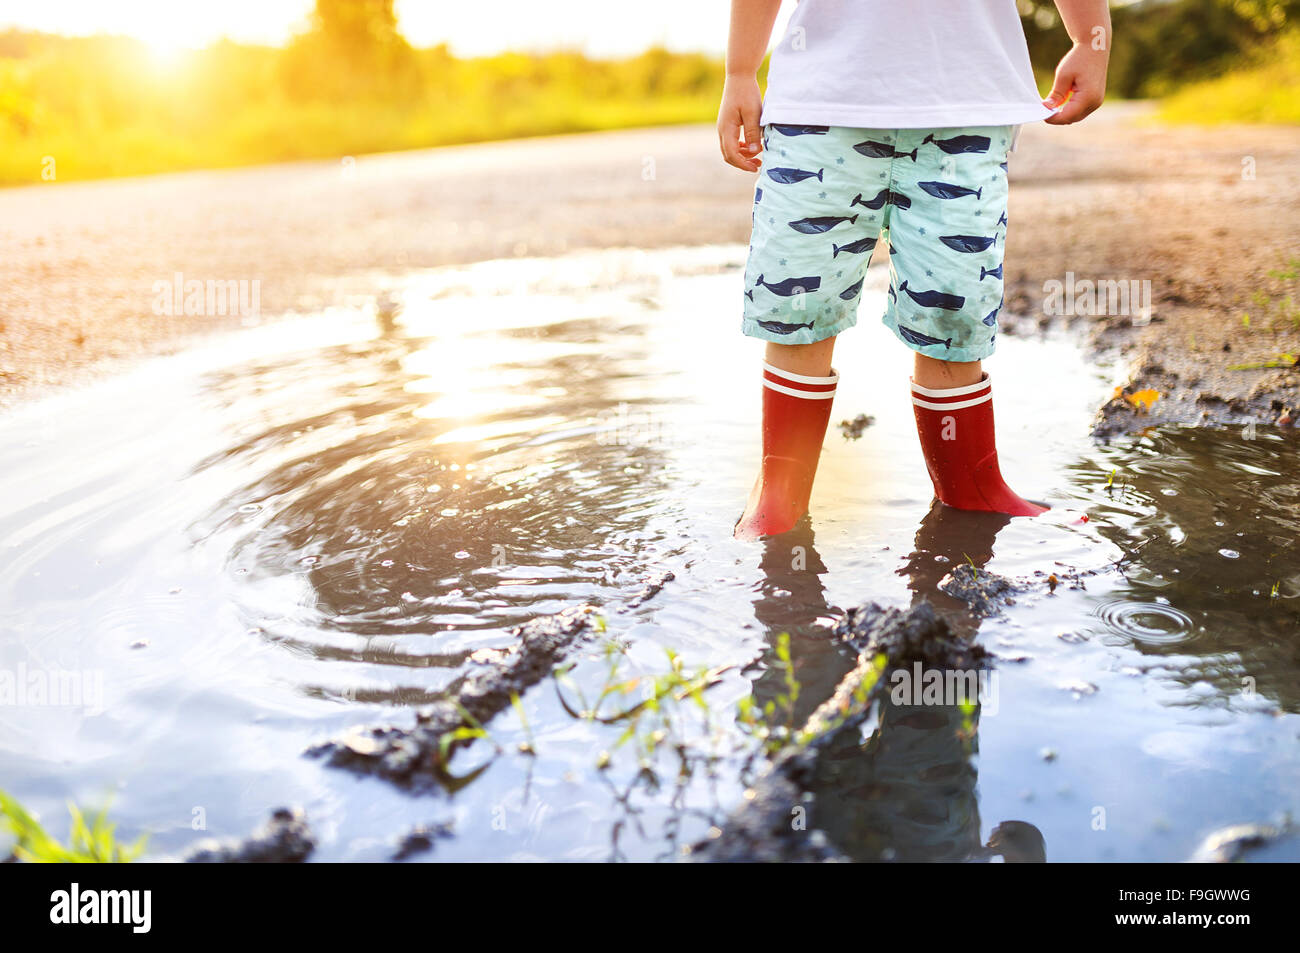 Little boy playing outside in a puddle - Stock Image